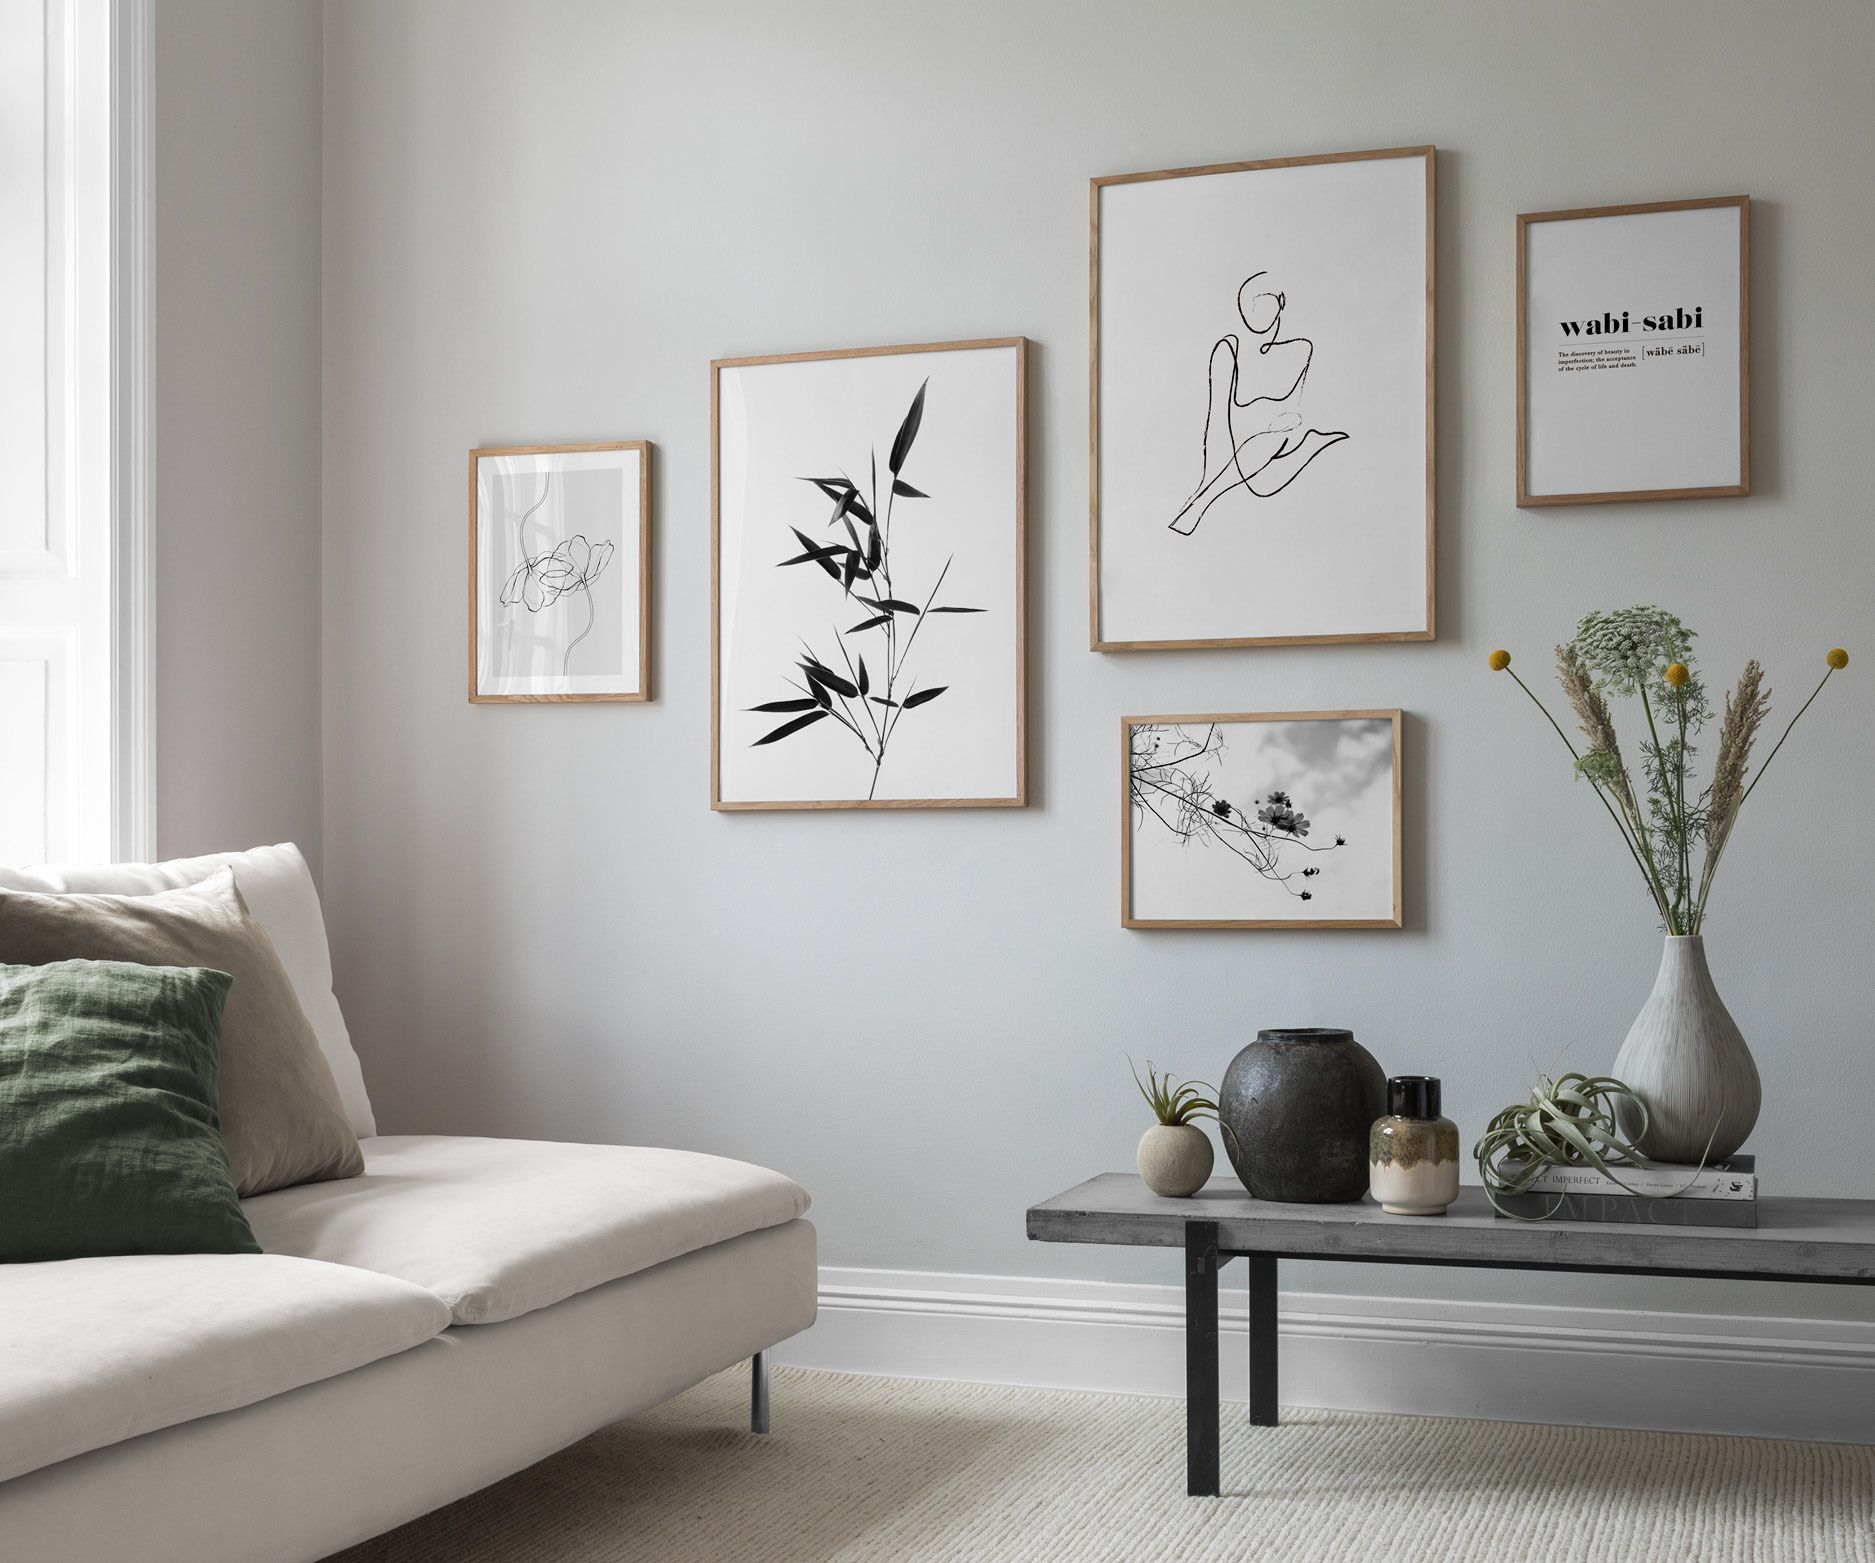 Interiors Decor Desenio A Little Bit Of Print Love Picture Wall Living Room Living Room Wall Living Room Pictures